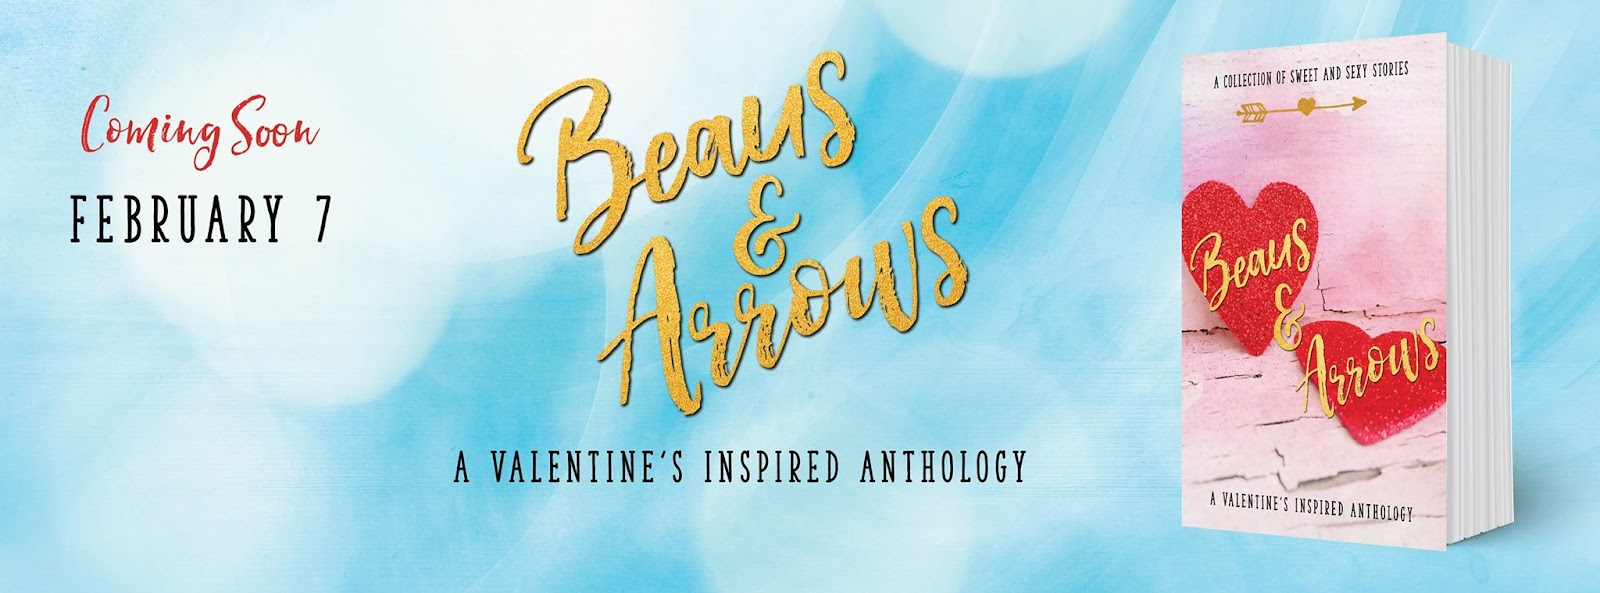 beaus & arrows banner.jpg